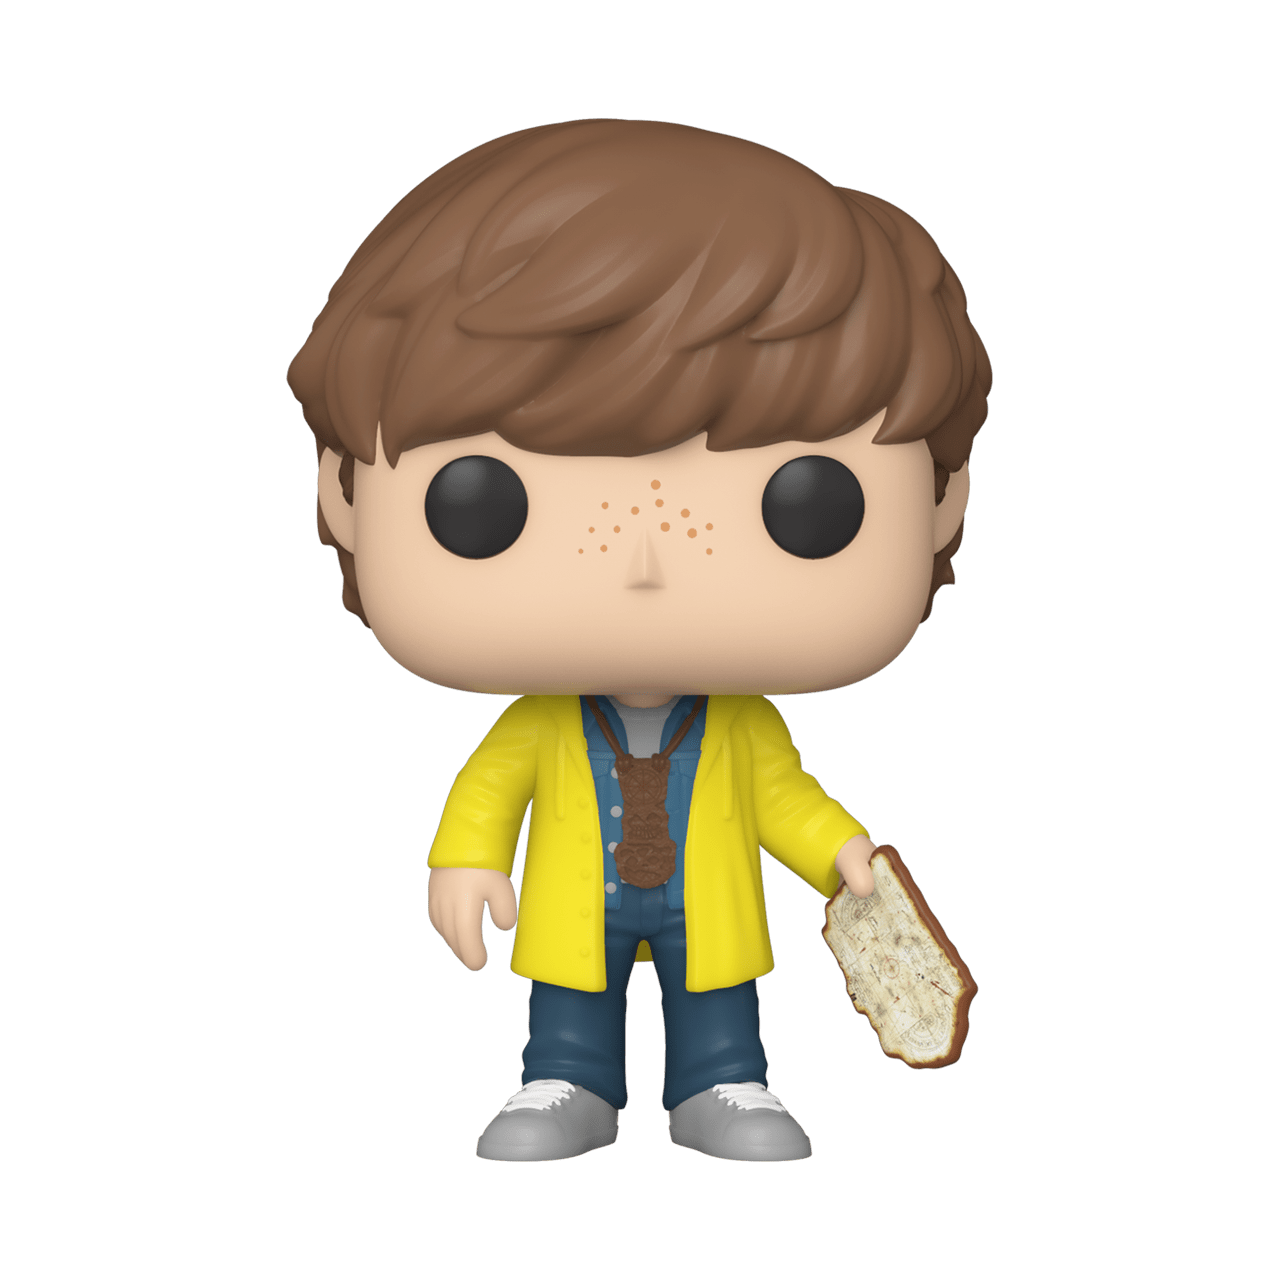 Mikey With Map: The Goonies Pop Vinyl - 1